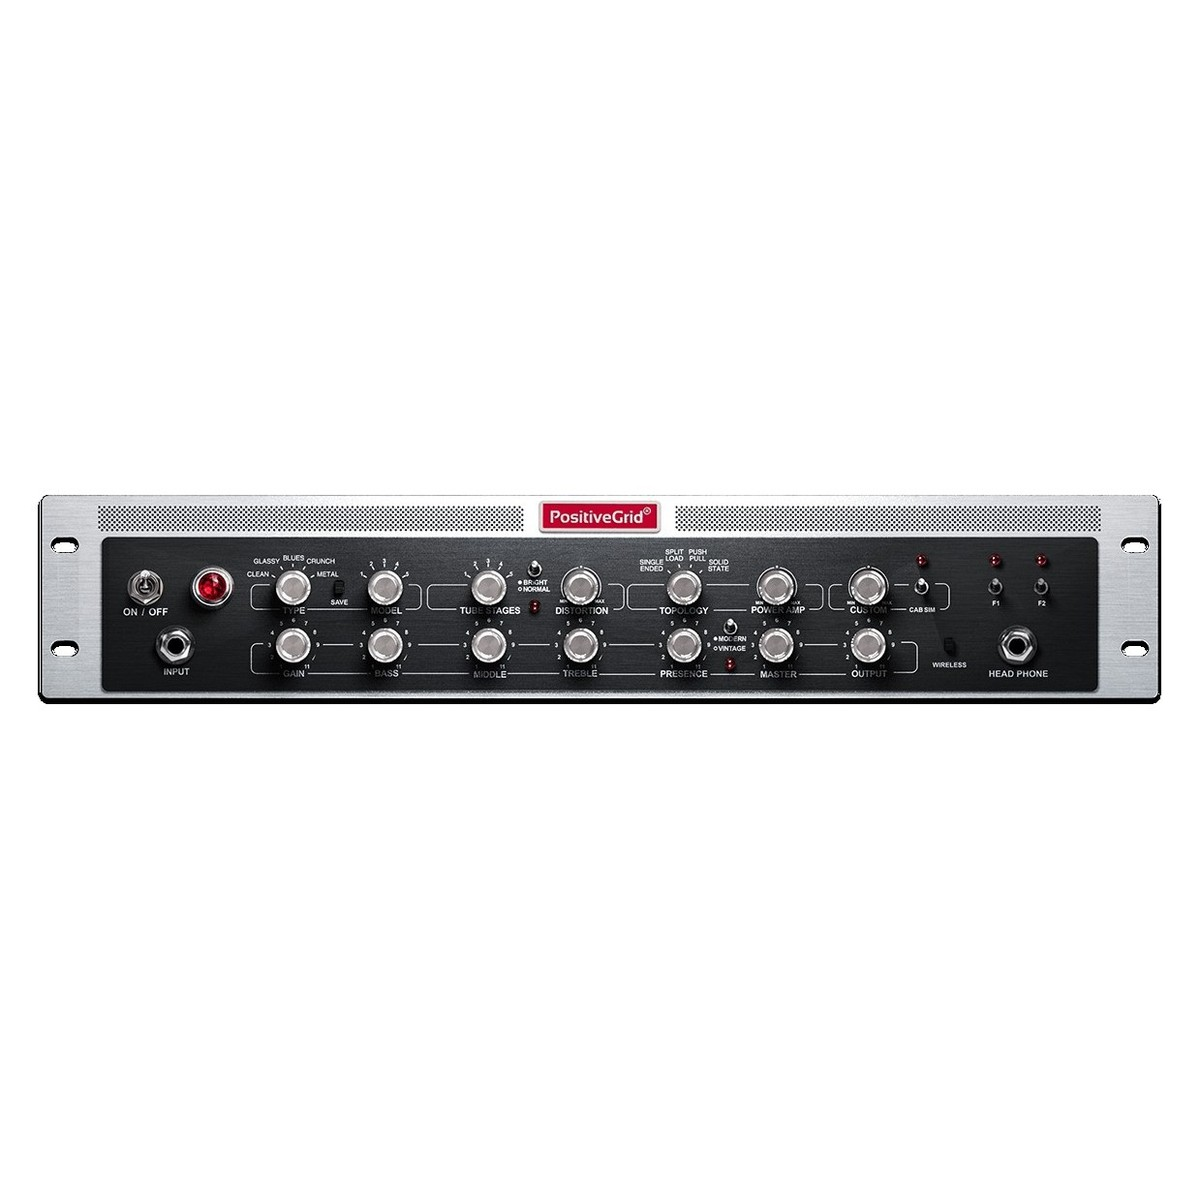 Positive Grid Bias Rack 600w Amp Match Rackmount Amplifier At Gear4music Audio Front Loading Zoom